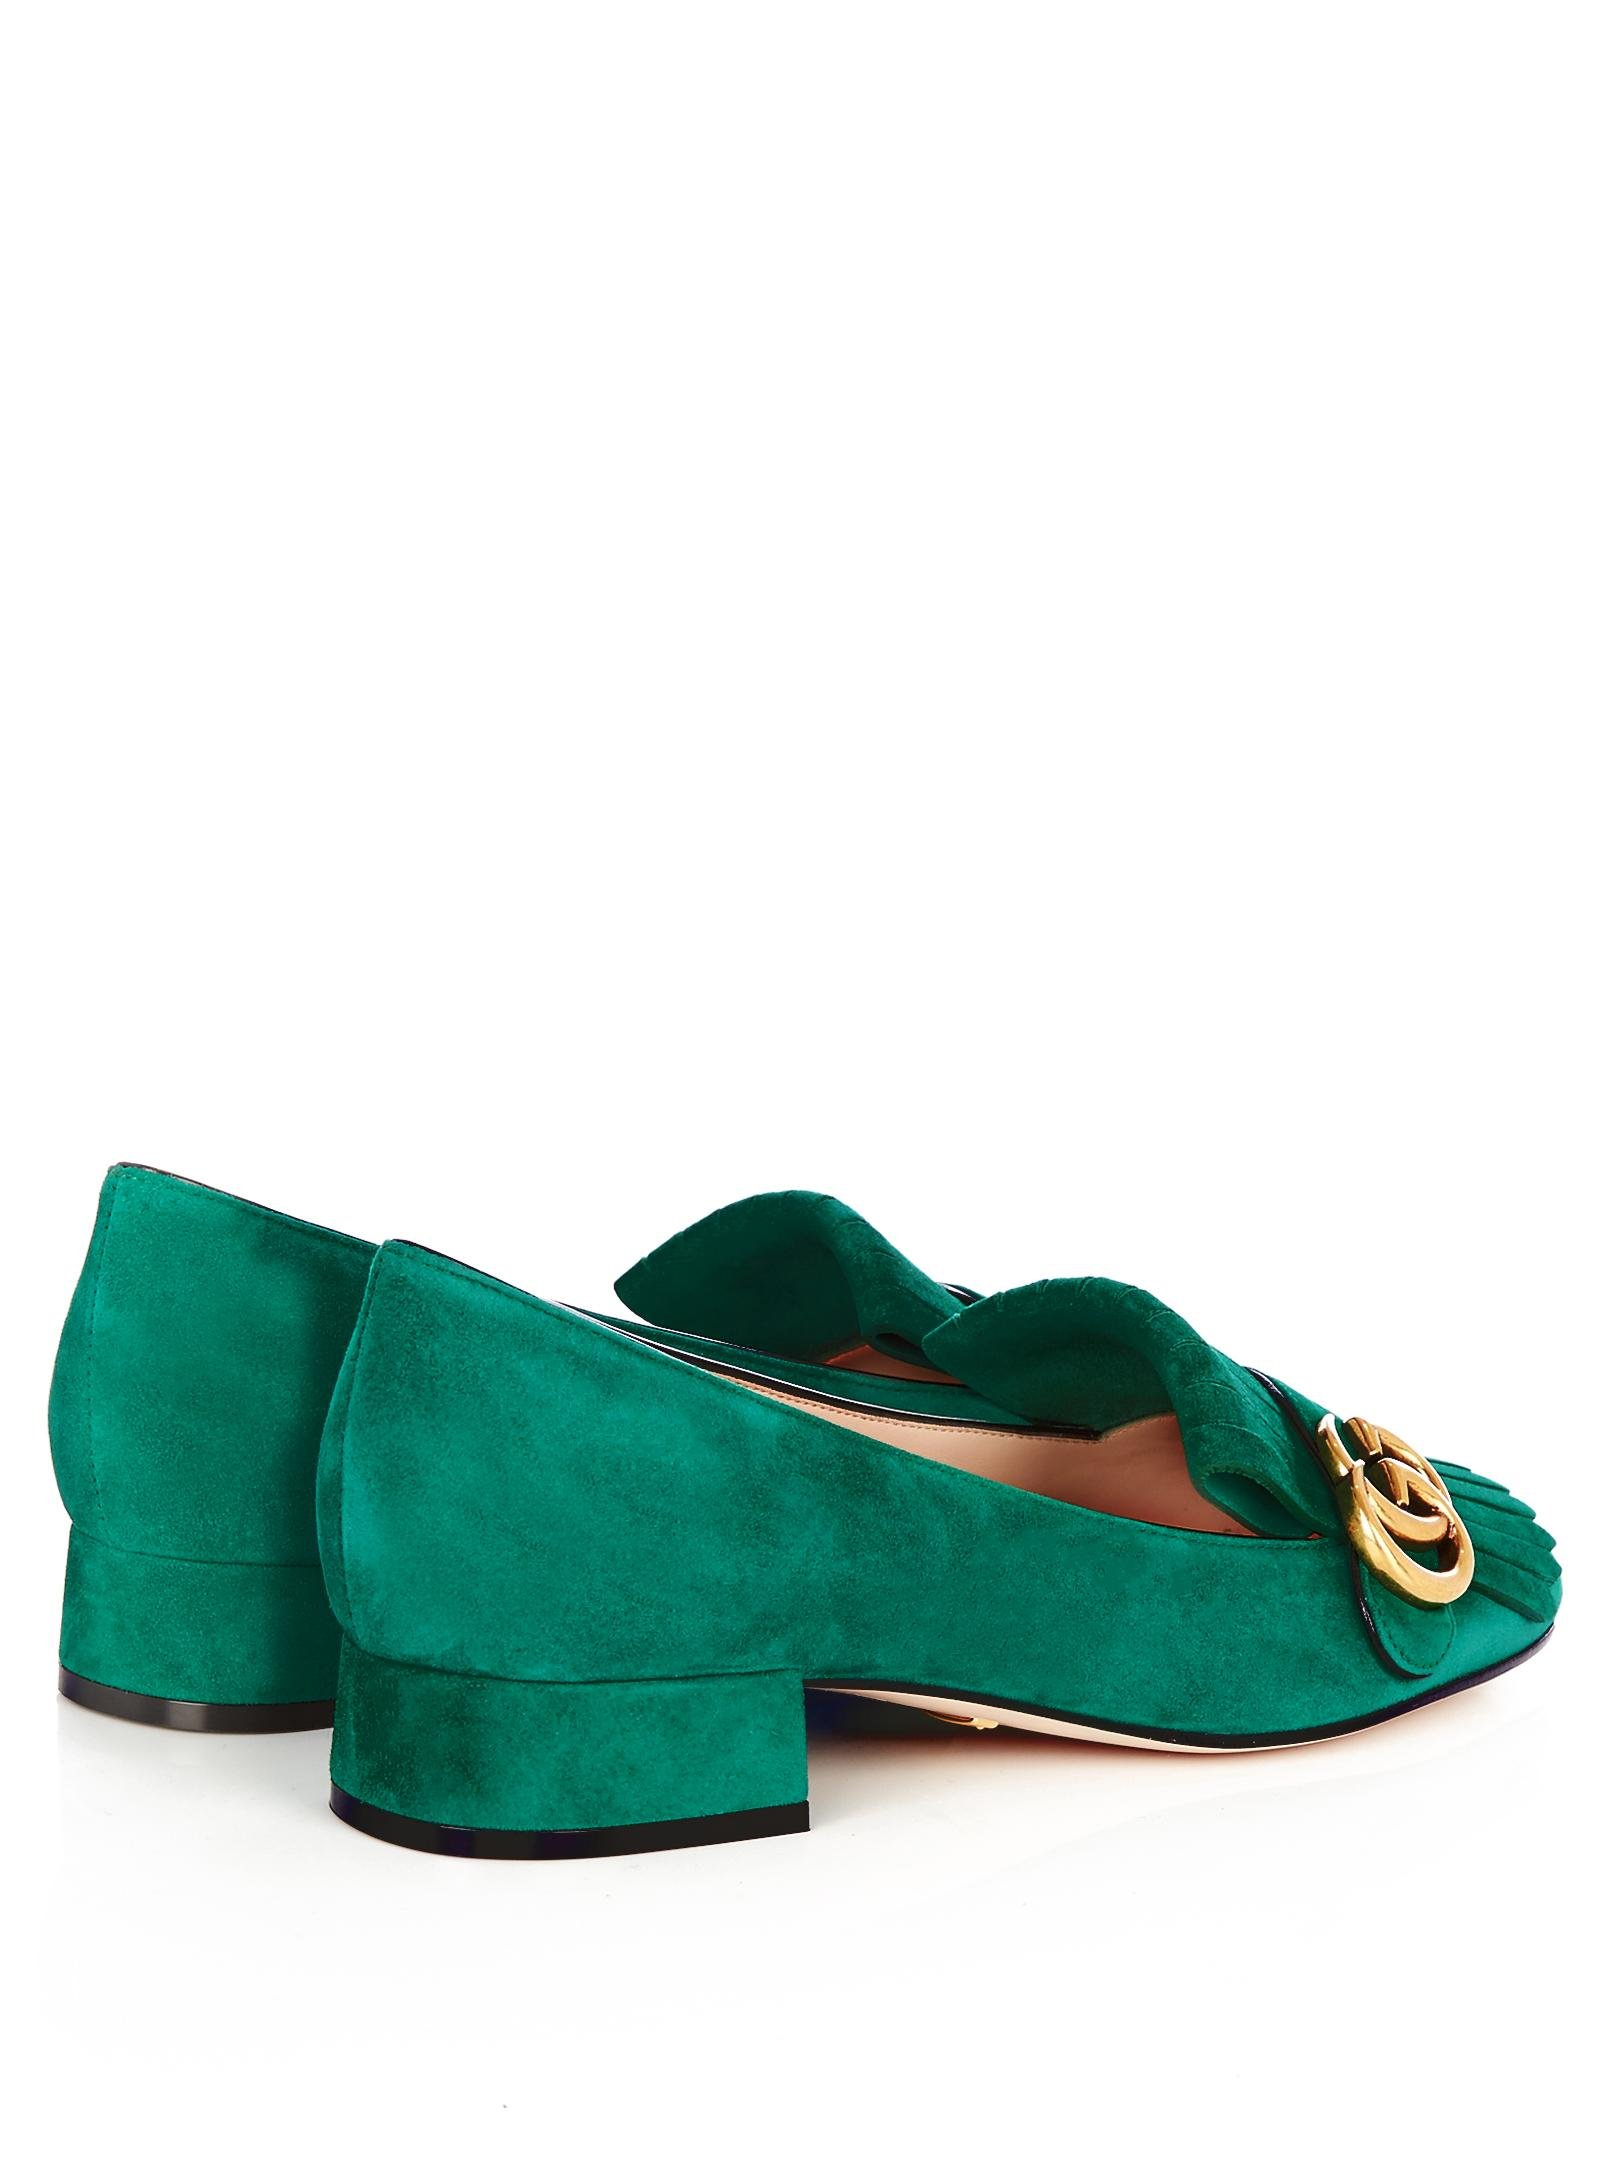 88794dff908 Lyst - Gucci Marmont Fringed Suede Loafers in Green